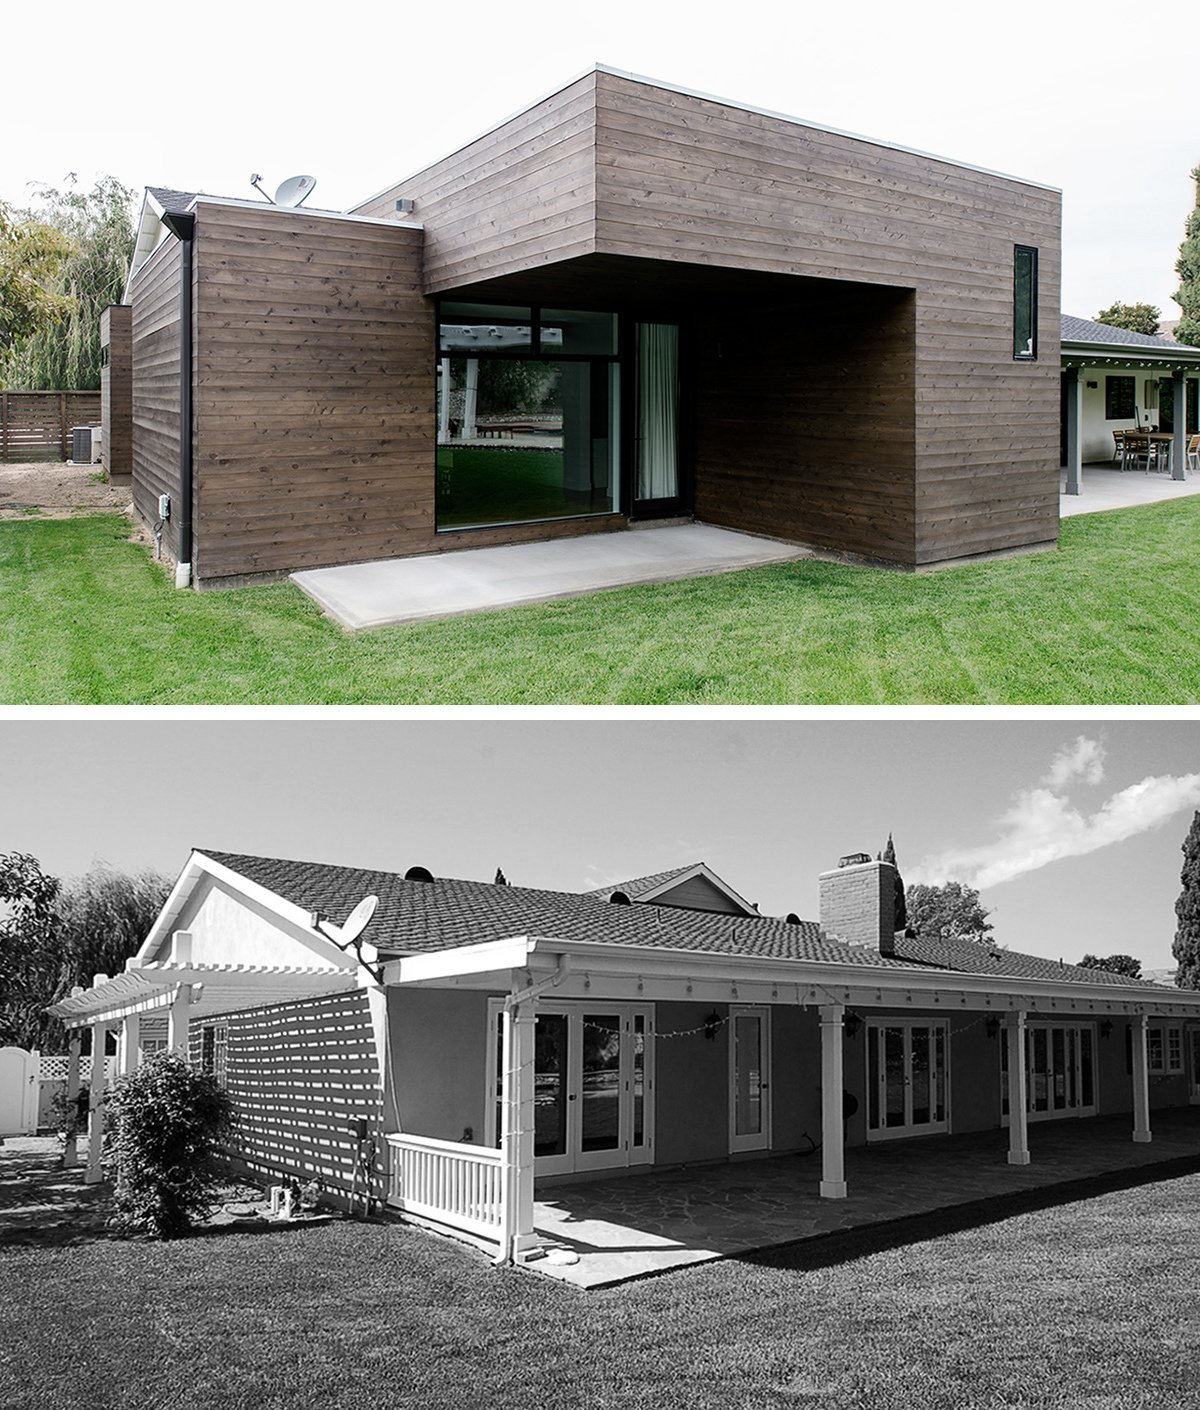 Outdoor, Hardscapes, Grass, Large Patio, Porch, Deck, Wood Patio, Porch, Deck, Concrete Patio, Porch, Deck, and Horizontal Fences, Wall AFTER / BEFORE   [addition at rear, villa park modern]  Villa Park Modern by MYD studio, inc.